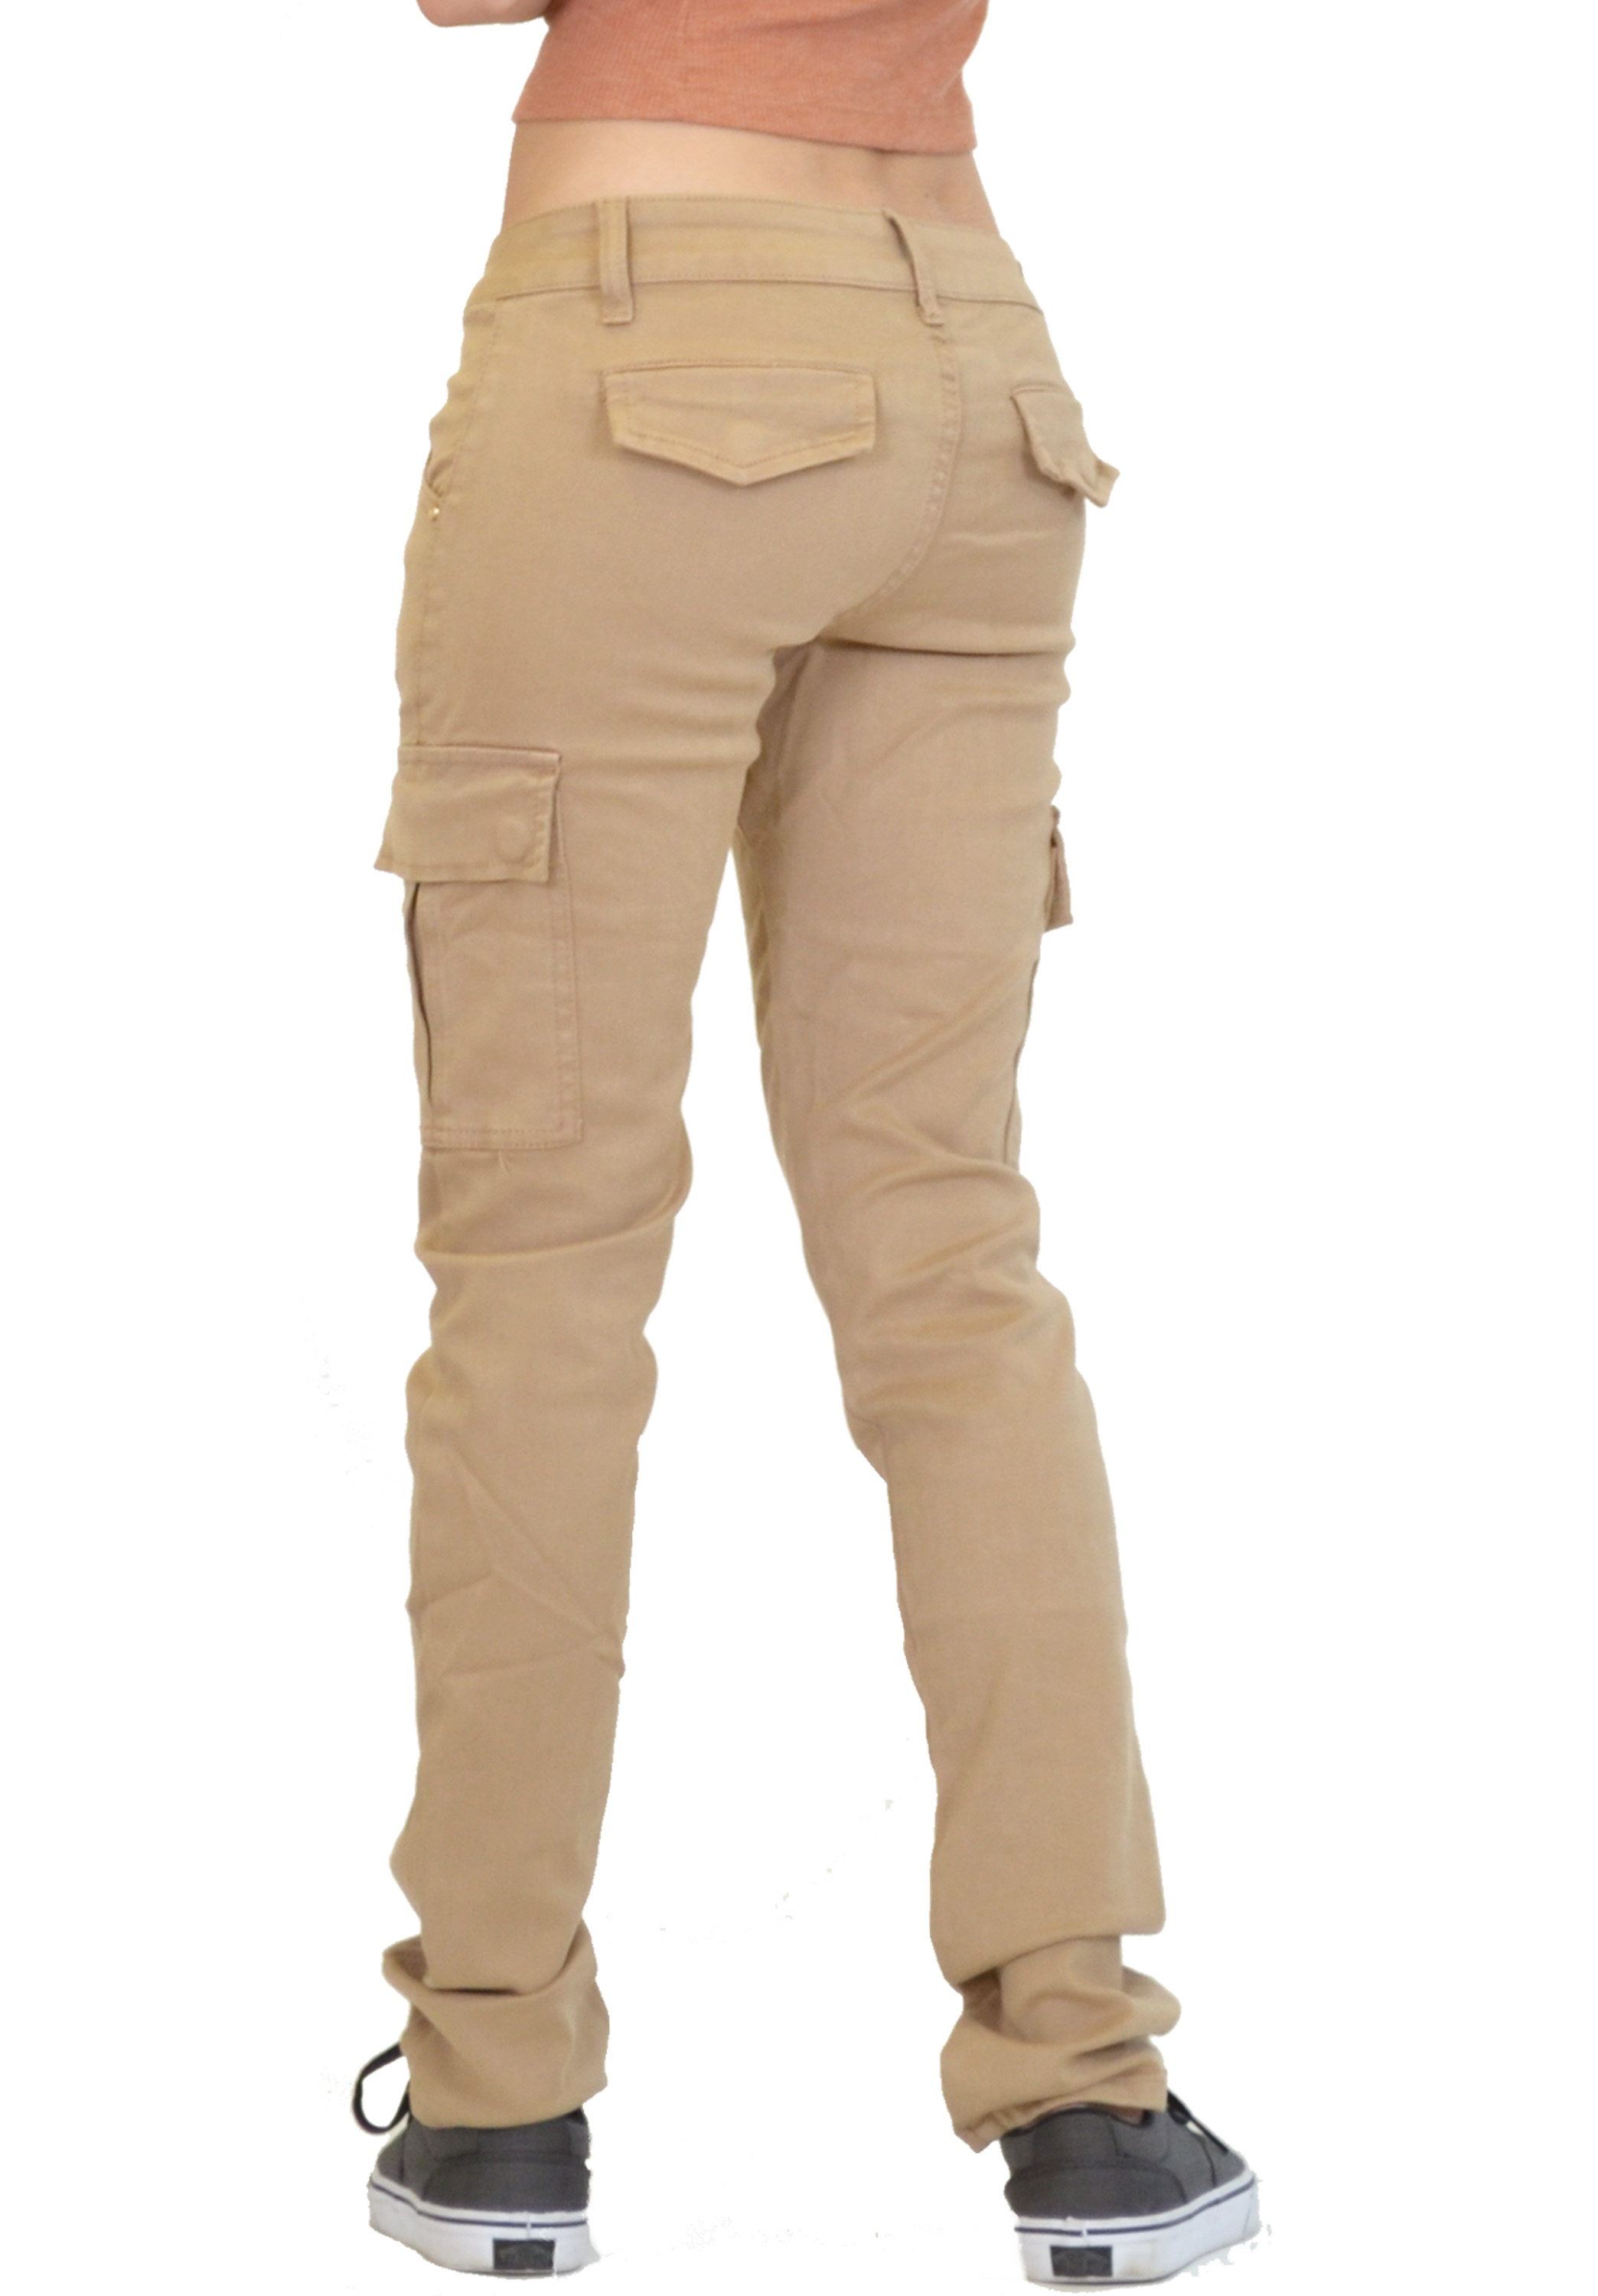 womens cargo pants size 6 photo - 1